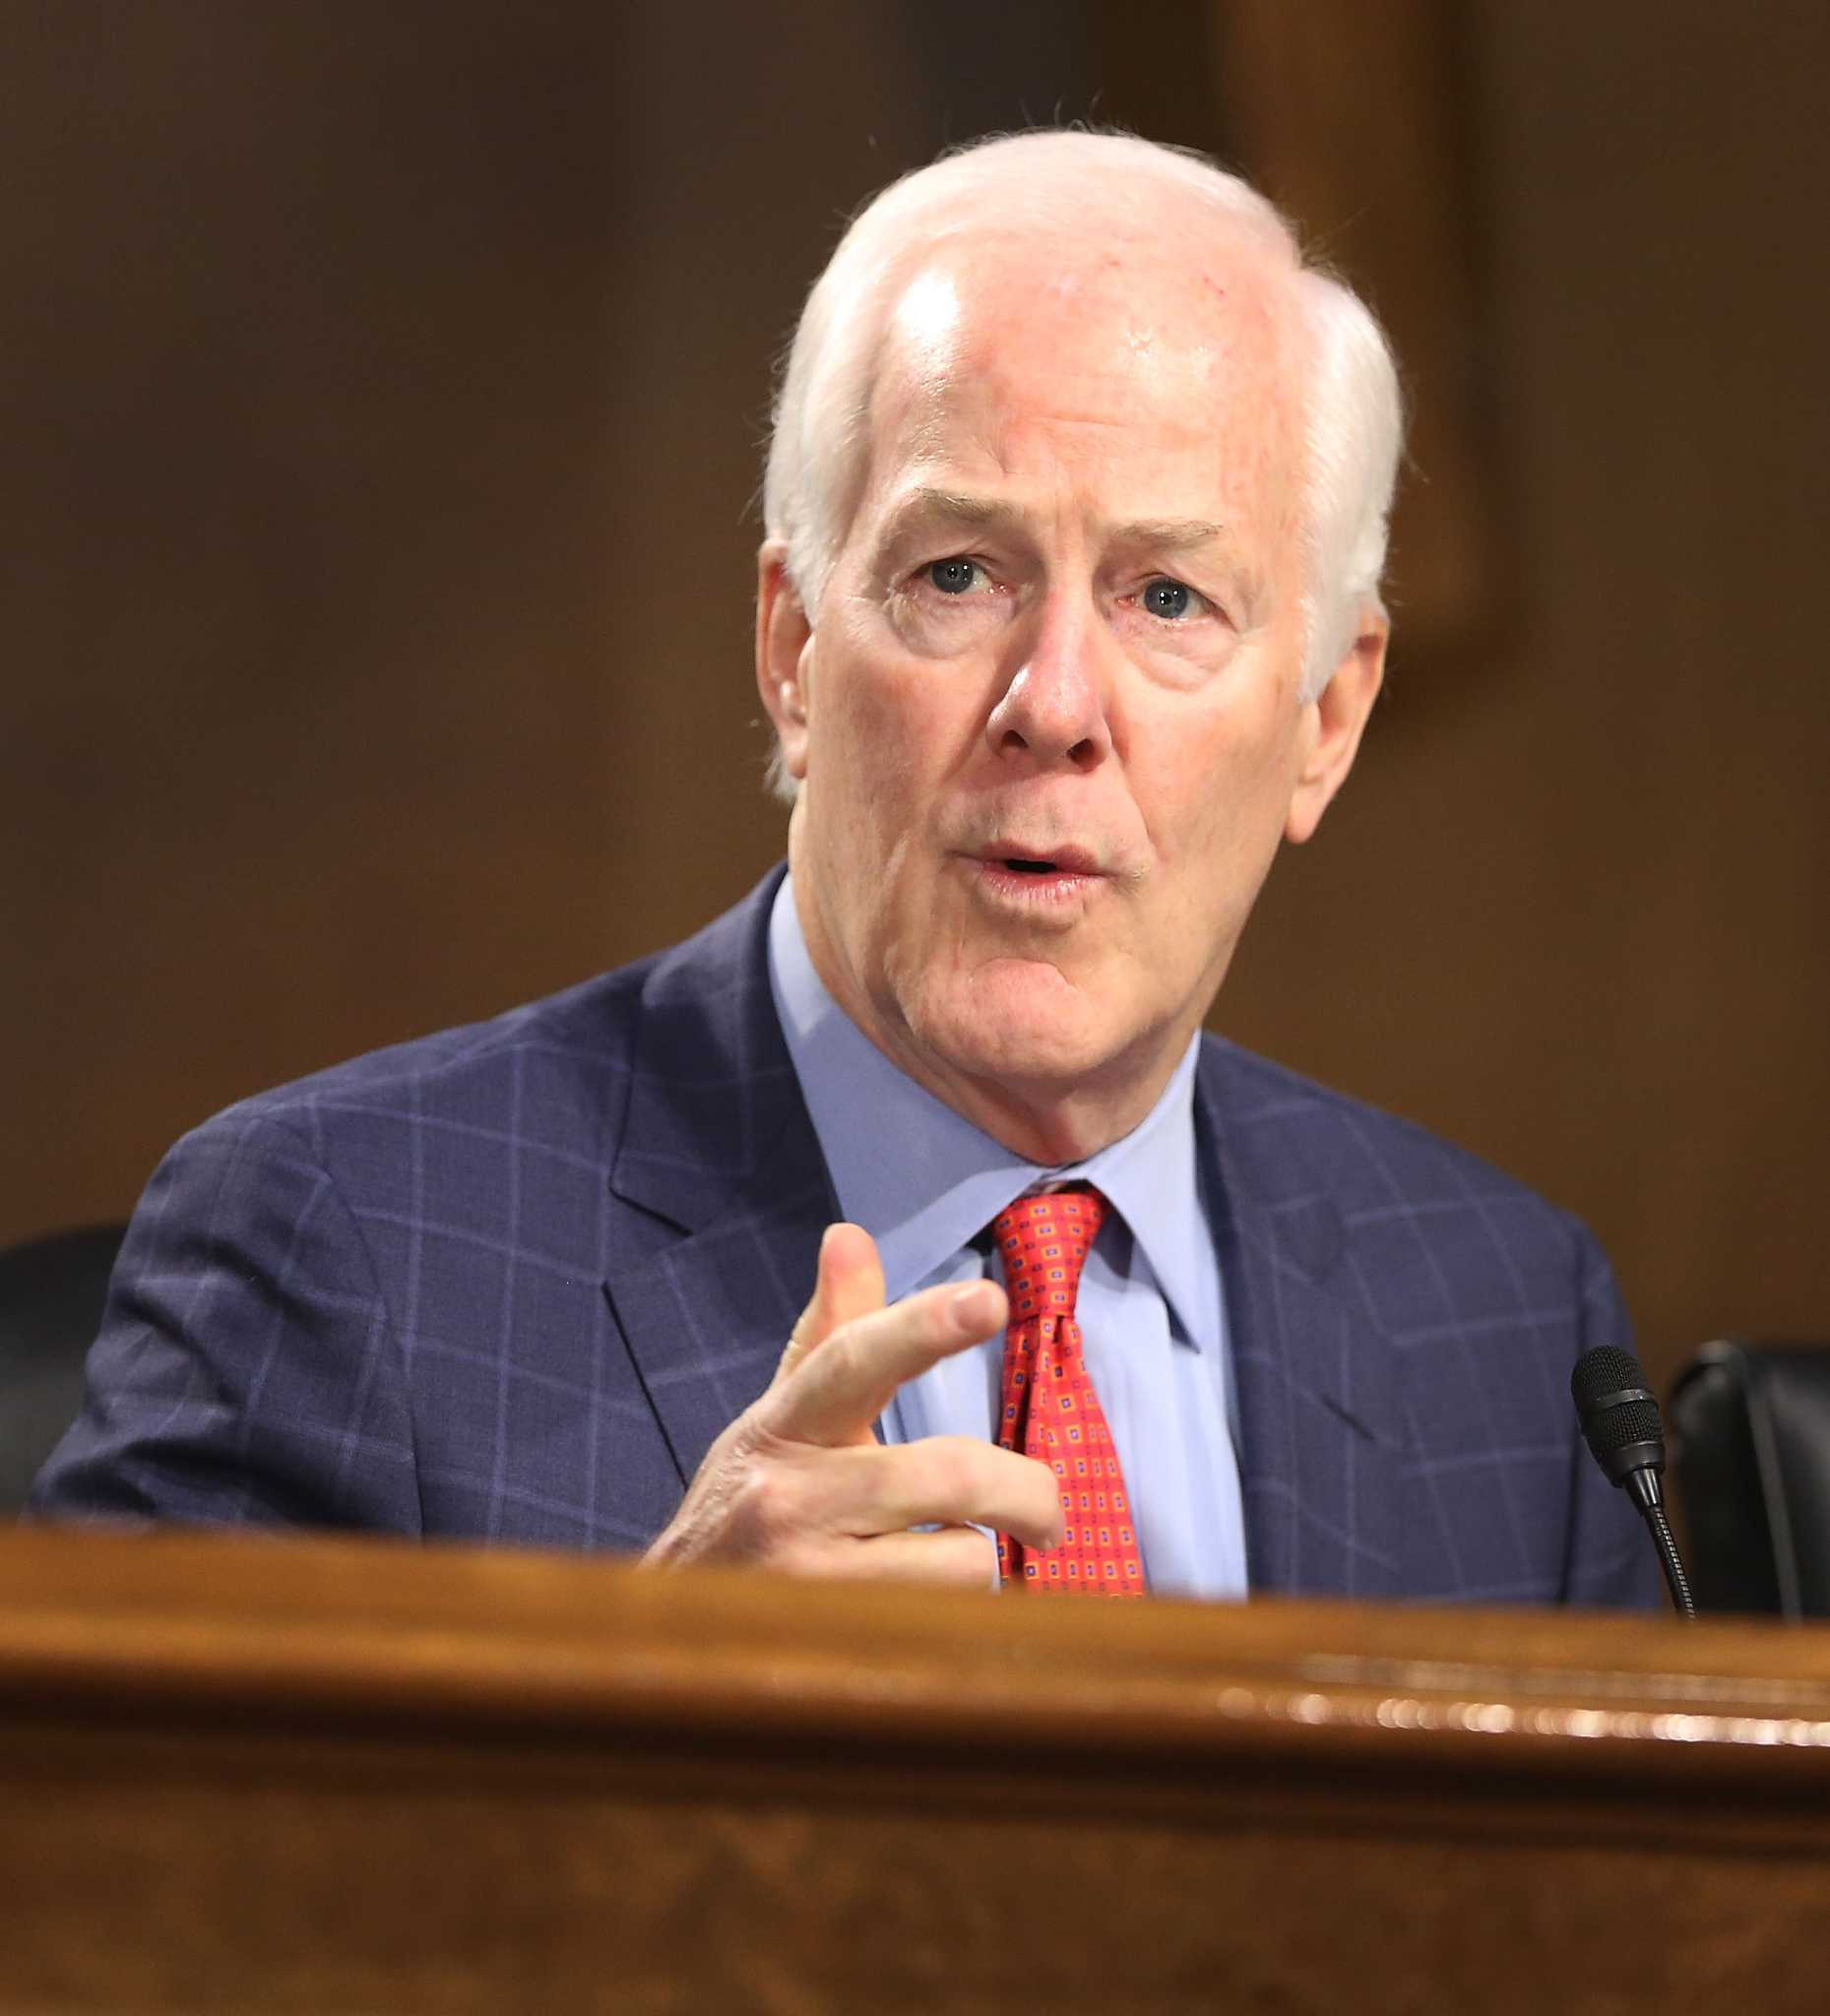 Exclusive: Cornyn says Trump missed 'opportunity' to unite after Charlottesville melee